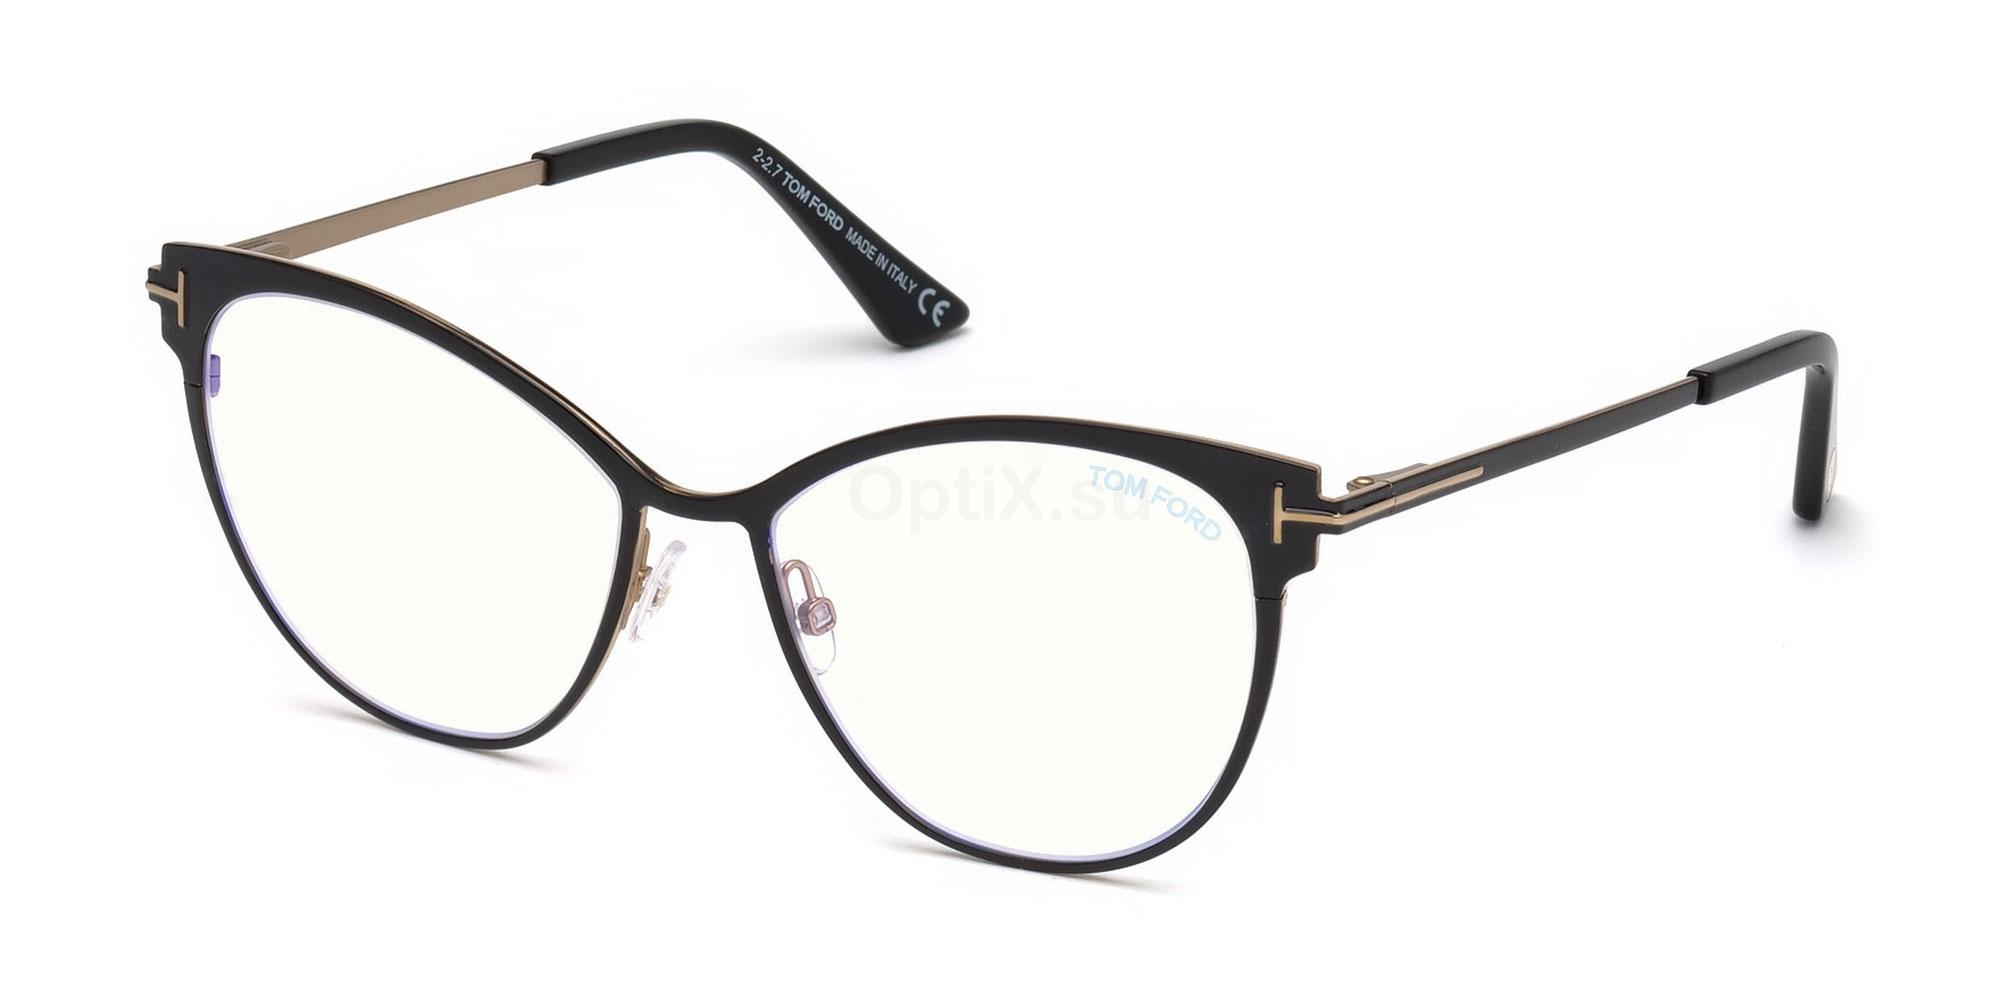 001 FT5530-B Glasses, Tom Ford